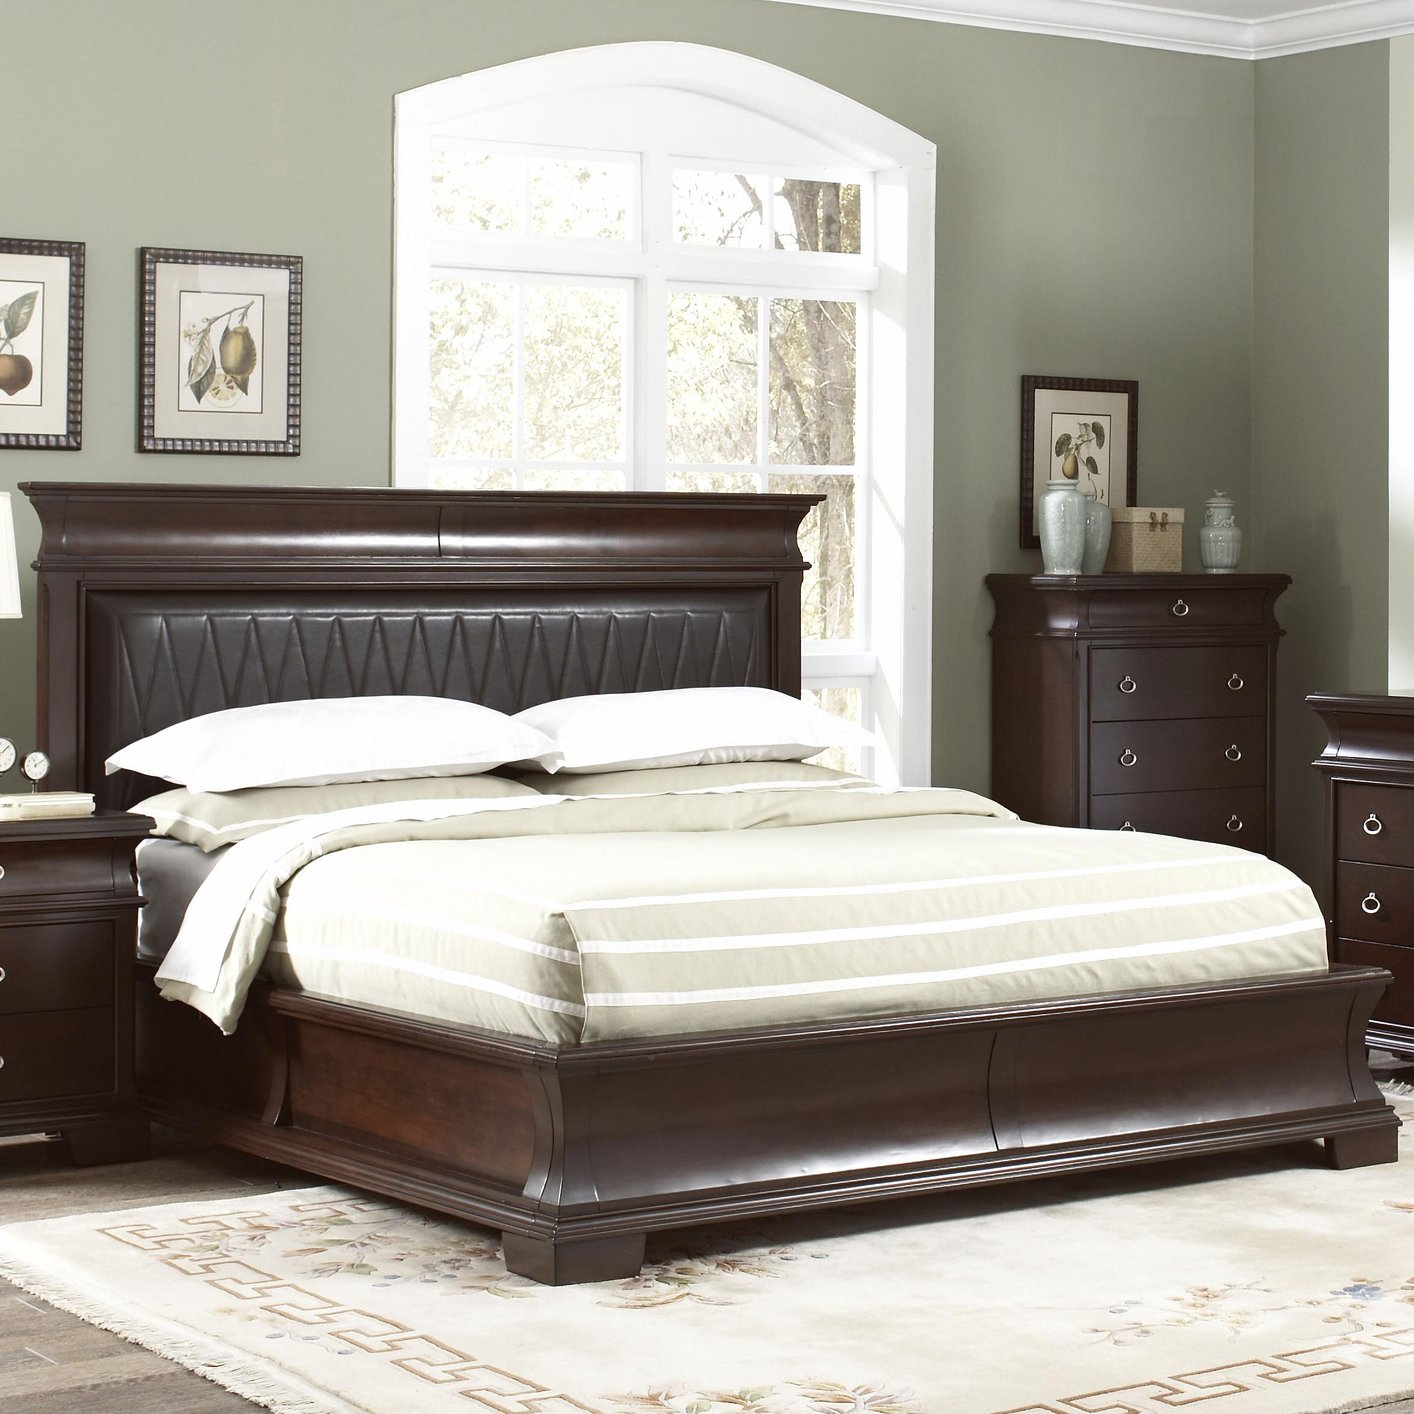 Coaster Ke Brown Eastern King Size Wood Bed